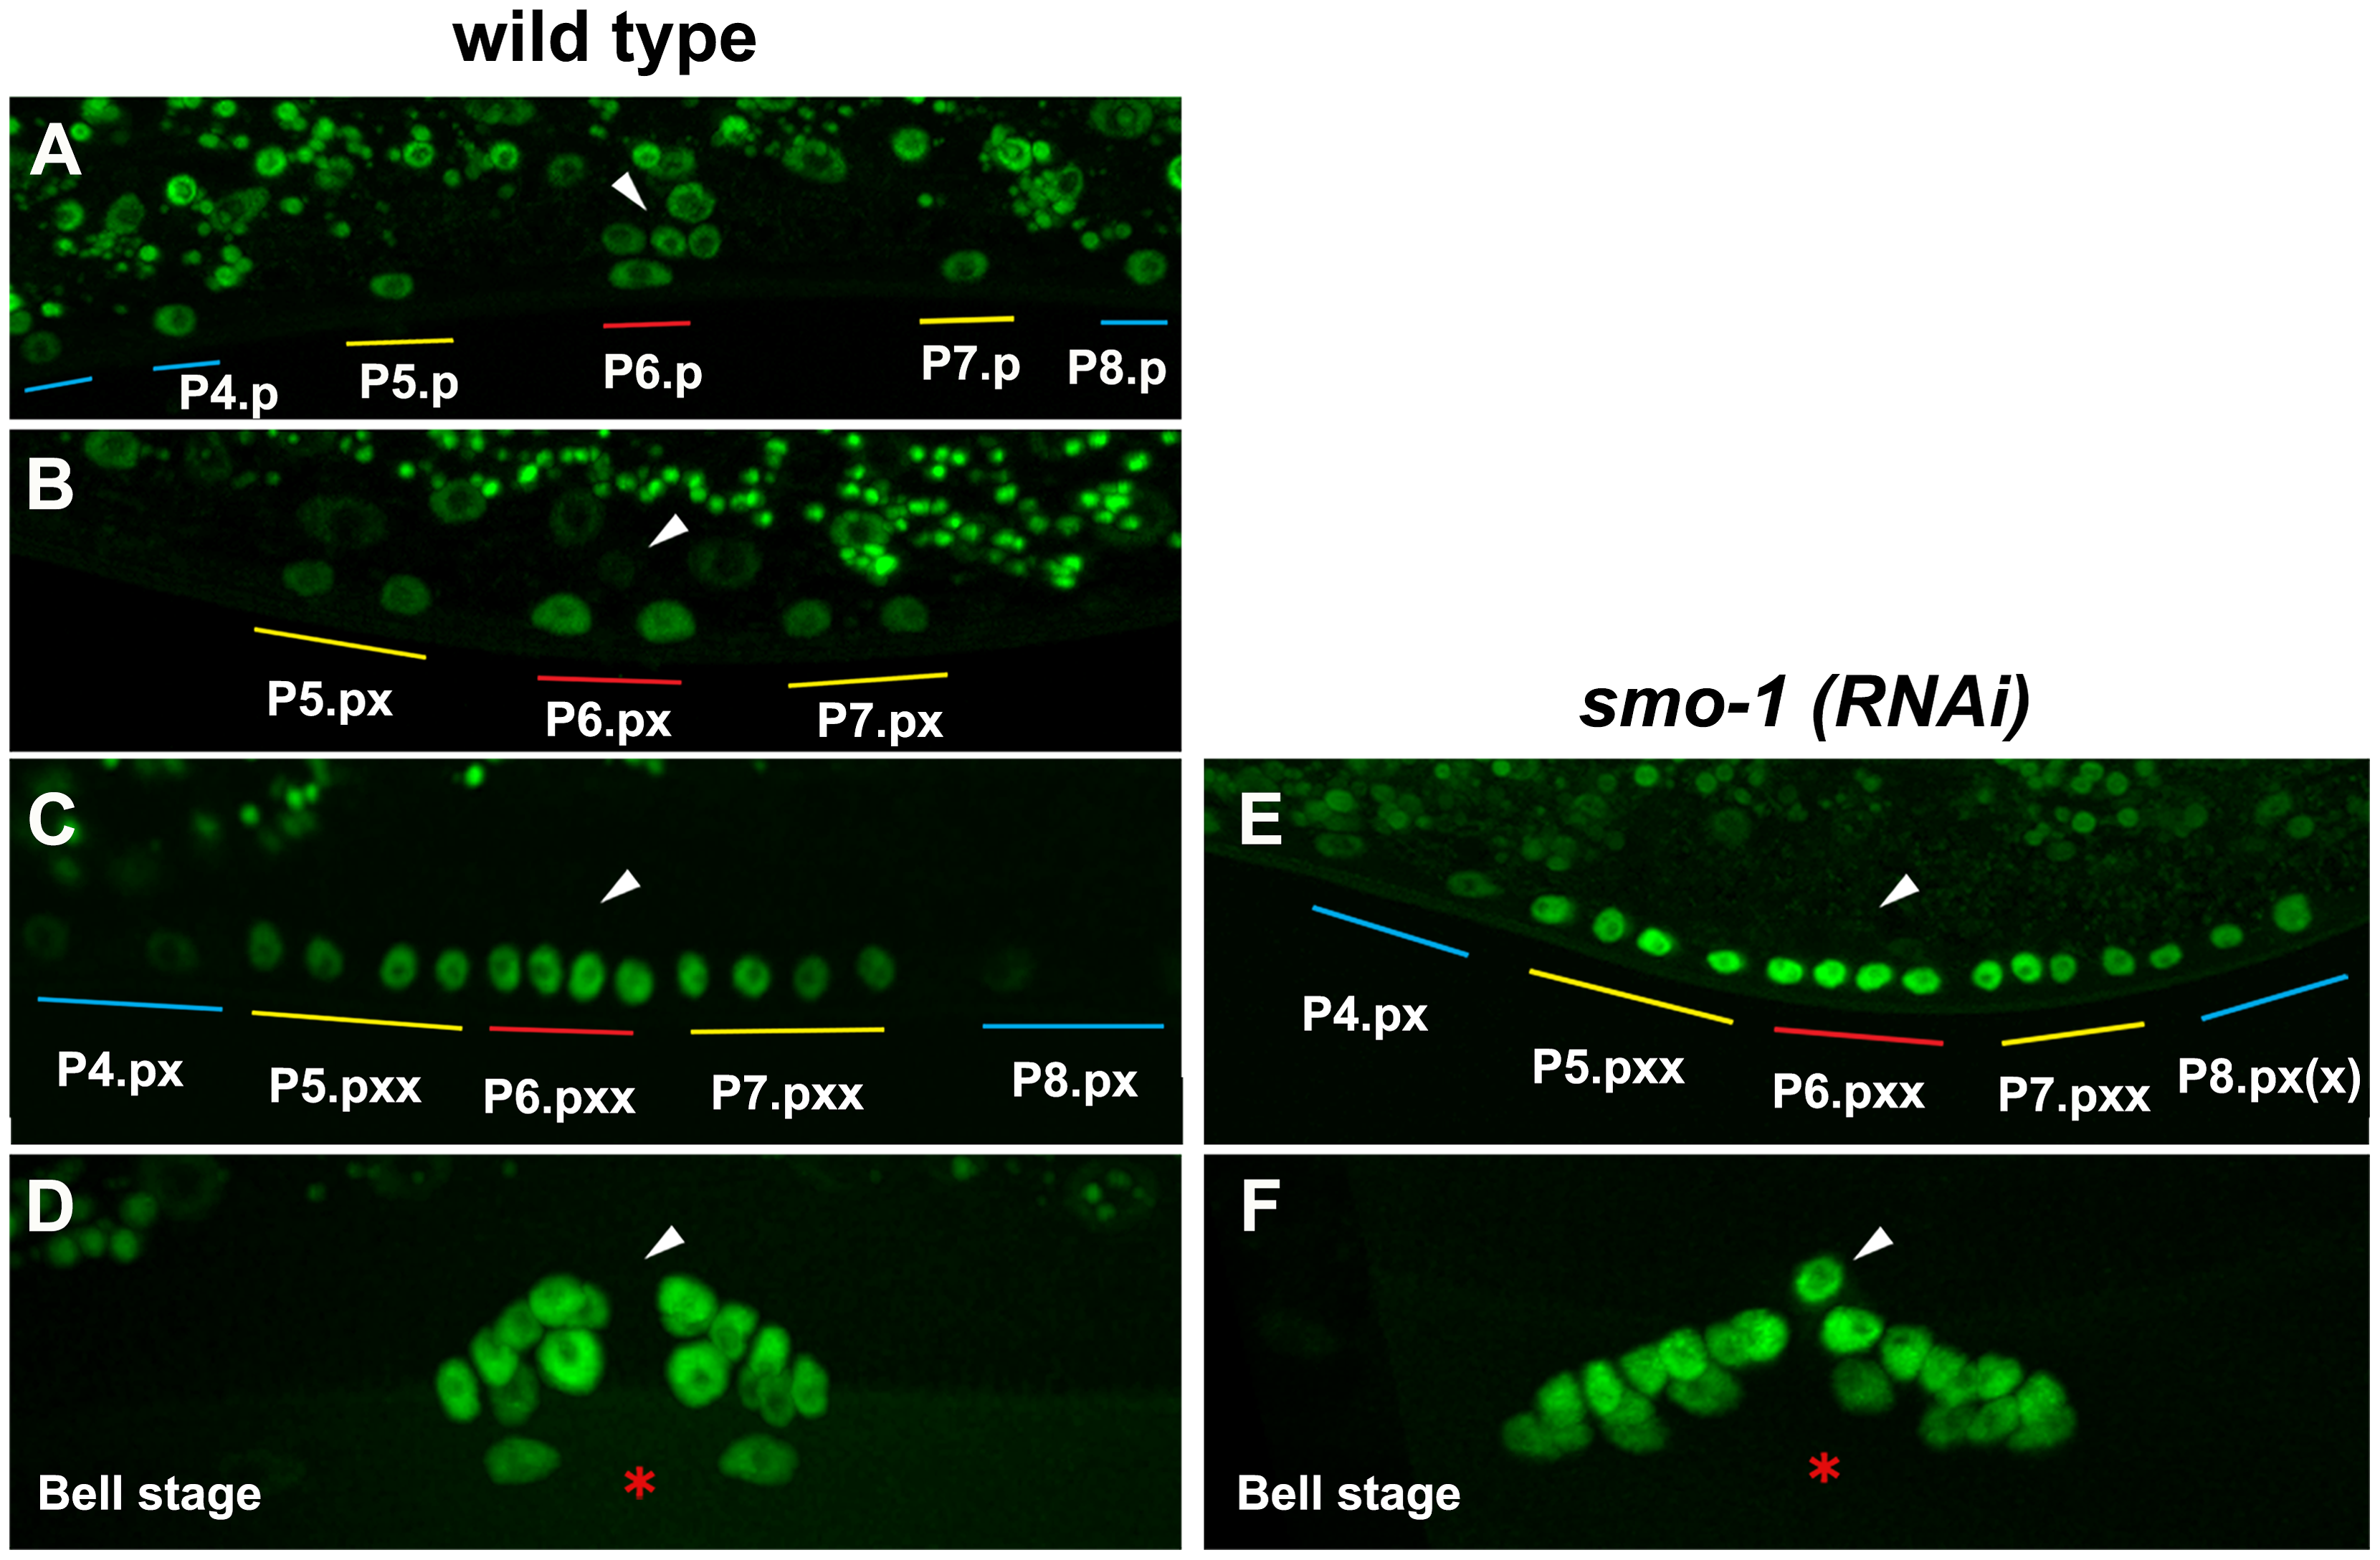 NHR-25::GFP (OP33) expression during vulval development.